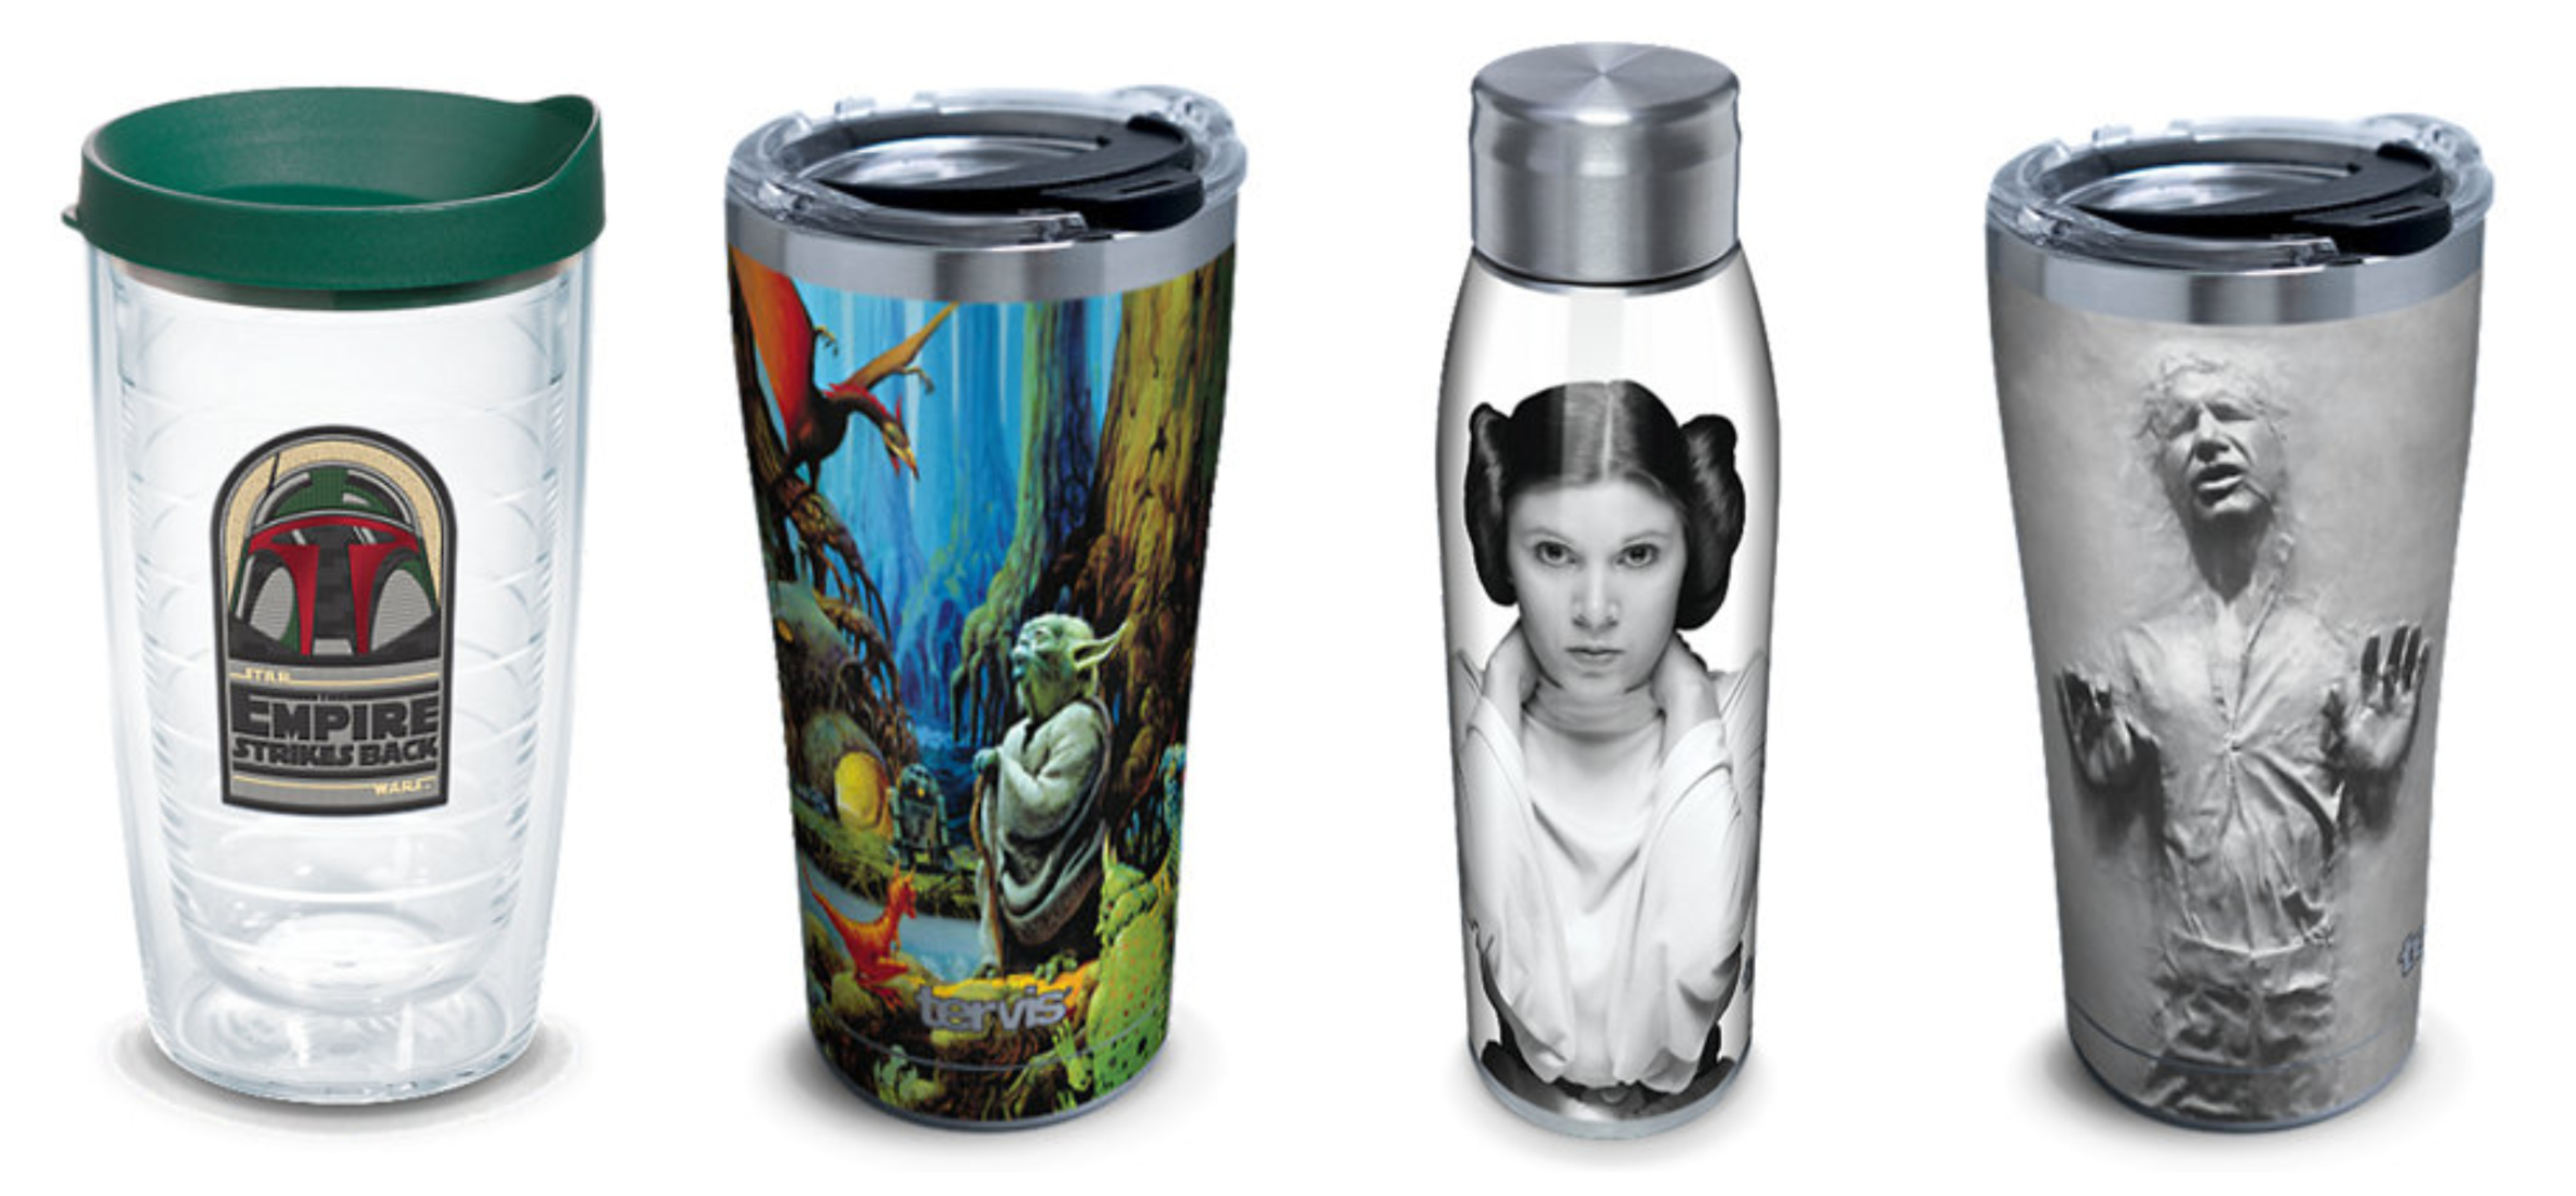 star wars empire strikes back tervis tumblers